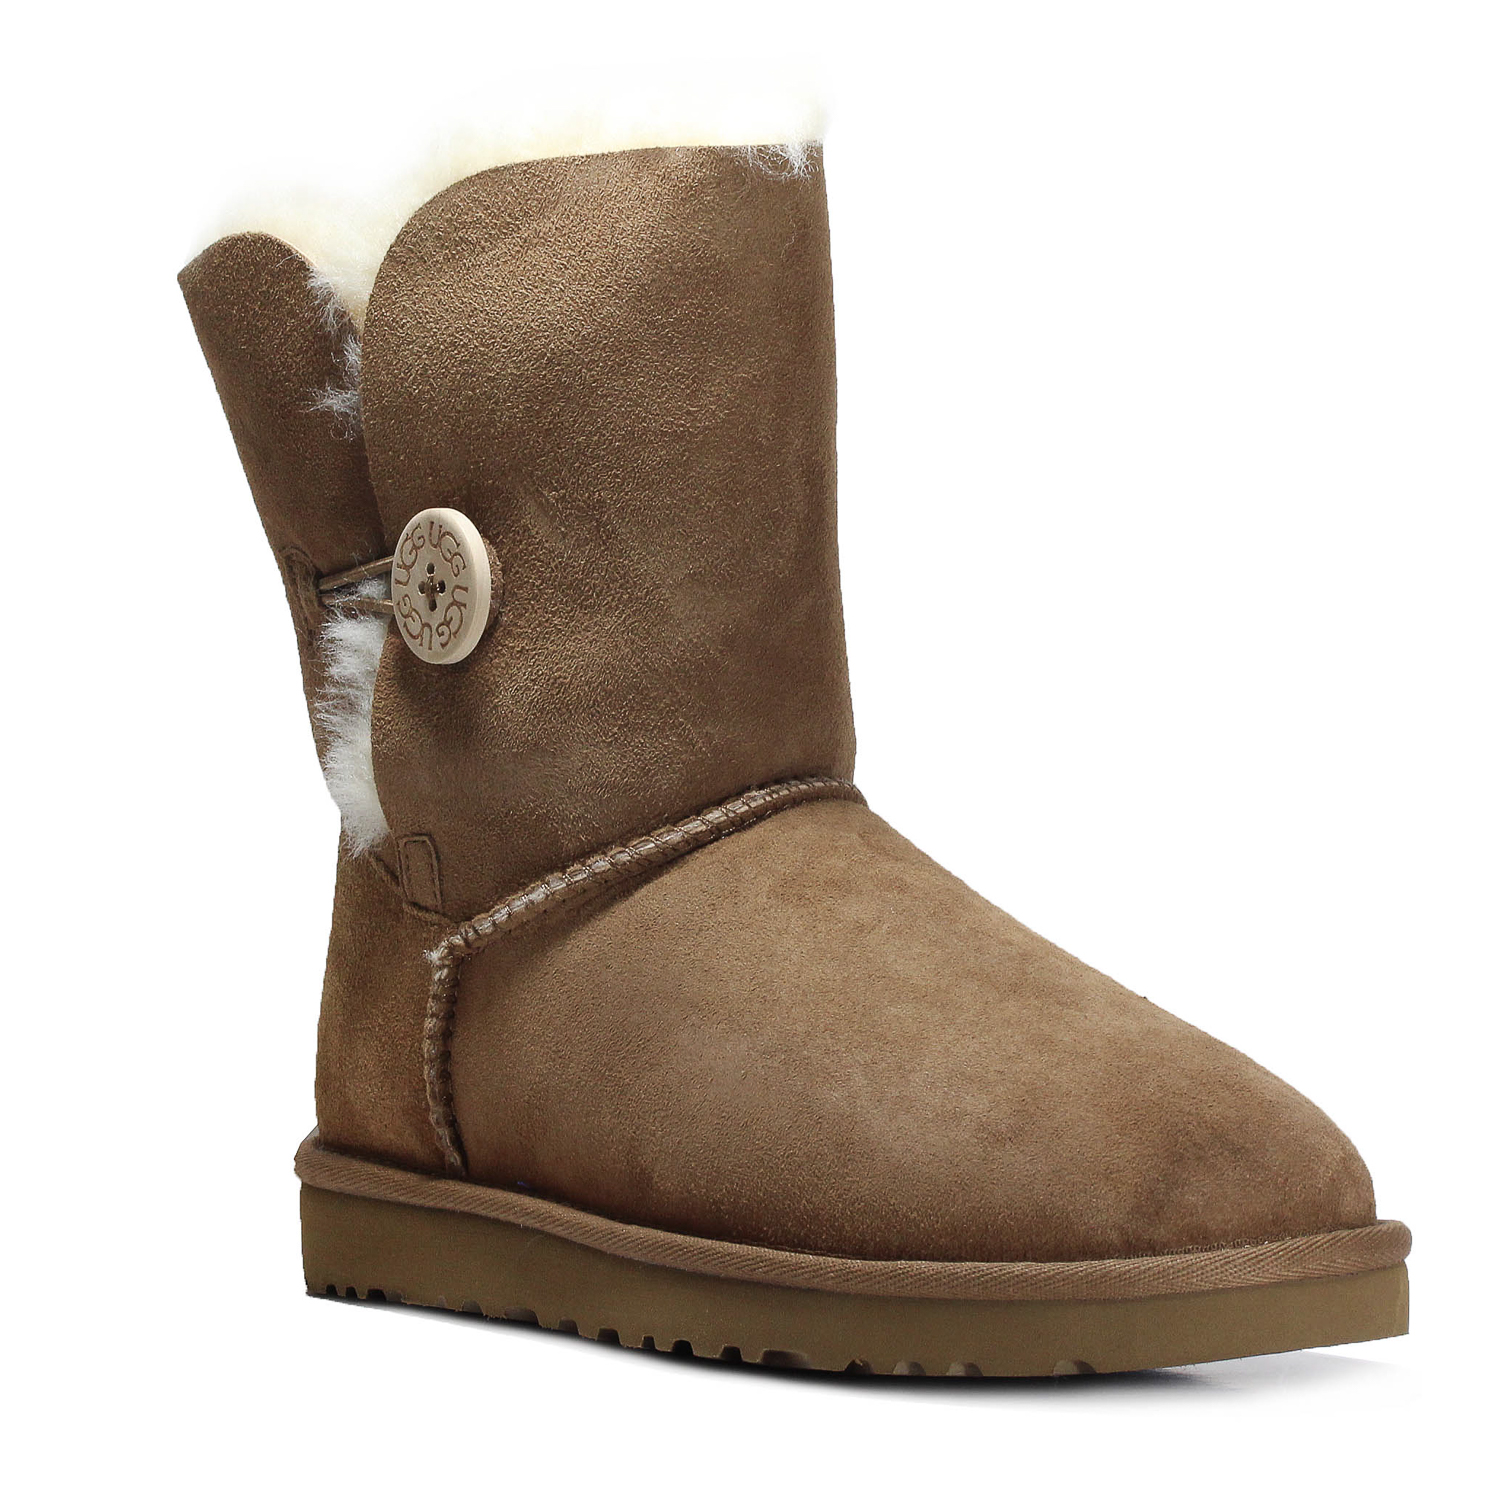 ec788caaef1 Details about Ugg Women's Bailey Button Ankle Boot Shoes 5803W Chestnut